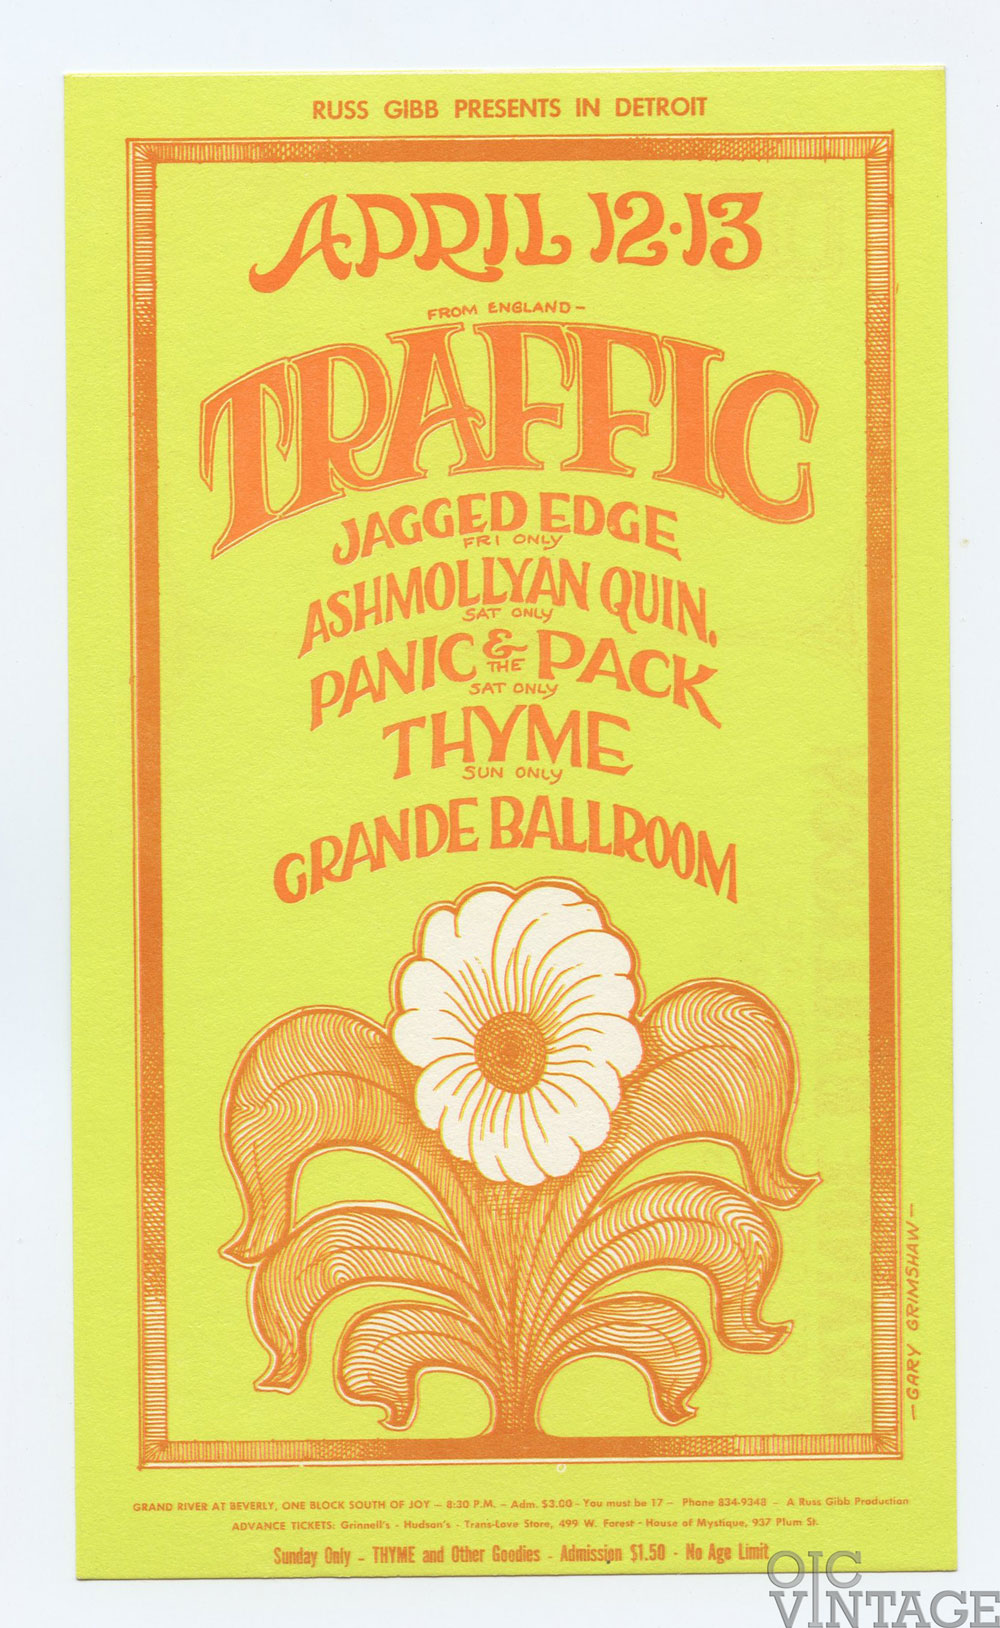 Grande Ballroom Postcard 1968 Apr 12 Traffic Jagged Edge Ashmollyan Quintet